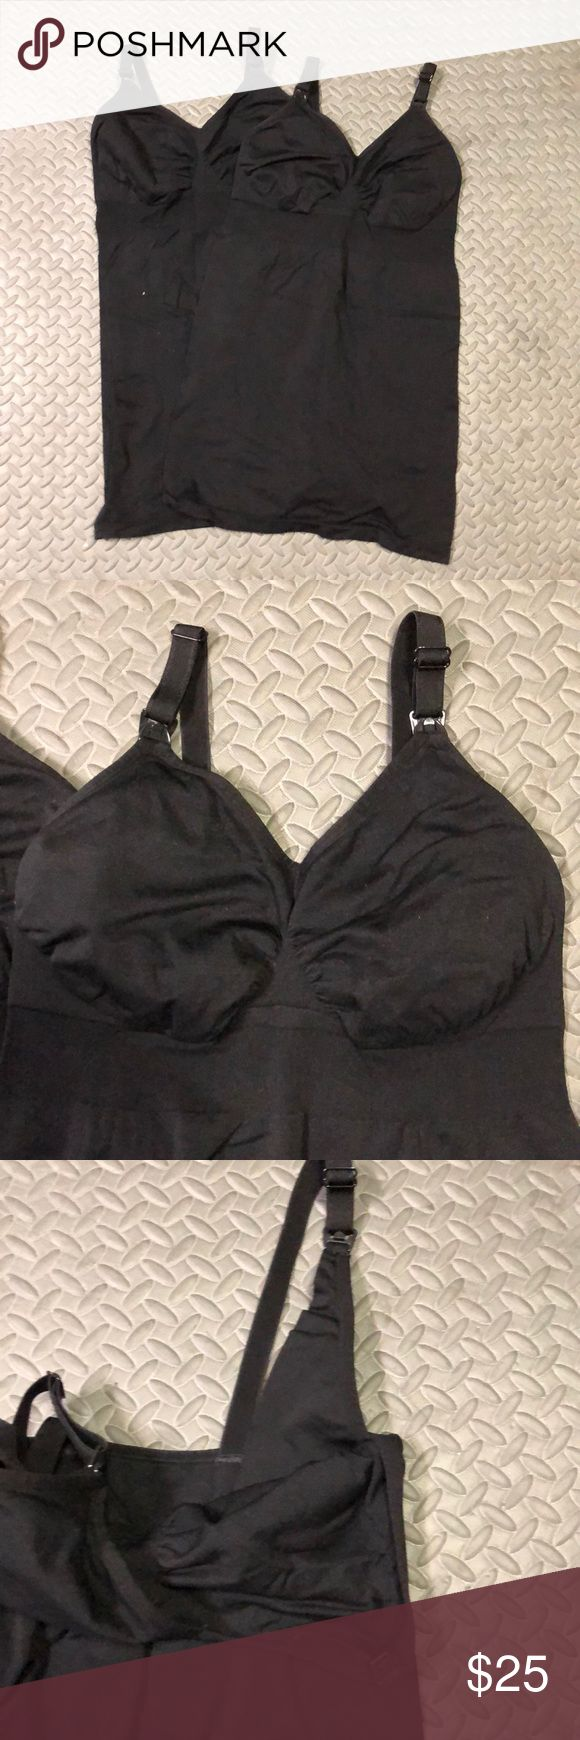 SET OF 2 BLACK POSTPARTUM NURSING TANK TOPS NO TAGS NOTED BUT I PURCHASED SIZE LARGE BEST BUY EVER... WORN THESE POSTPARTUM AND PEFECT FOR NURSING YOUR NEW BUNDLE OF JOY. Tops Camisoles